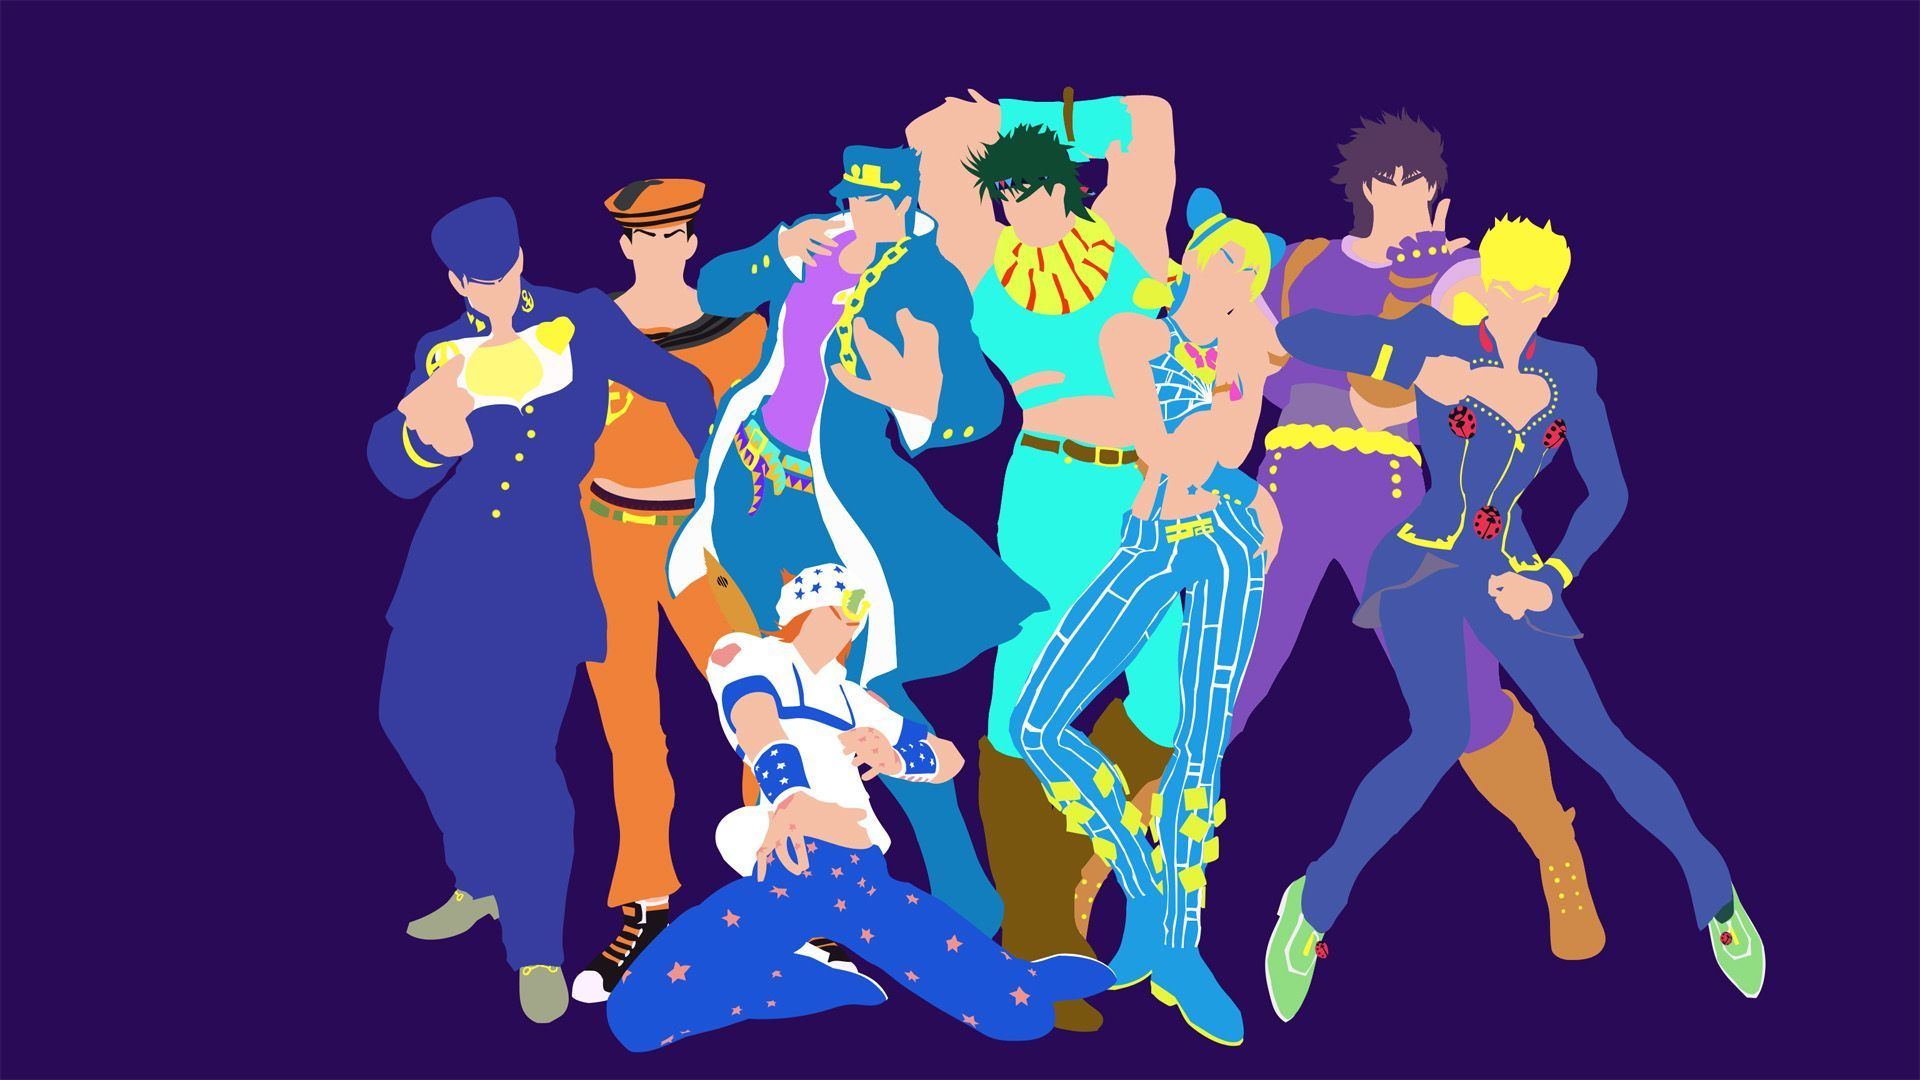 Stardust Crusaders Wallpapers Top Free Stardust Crusaders